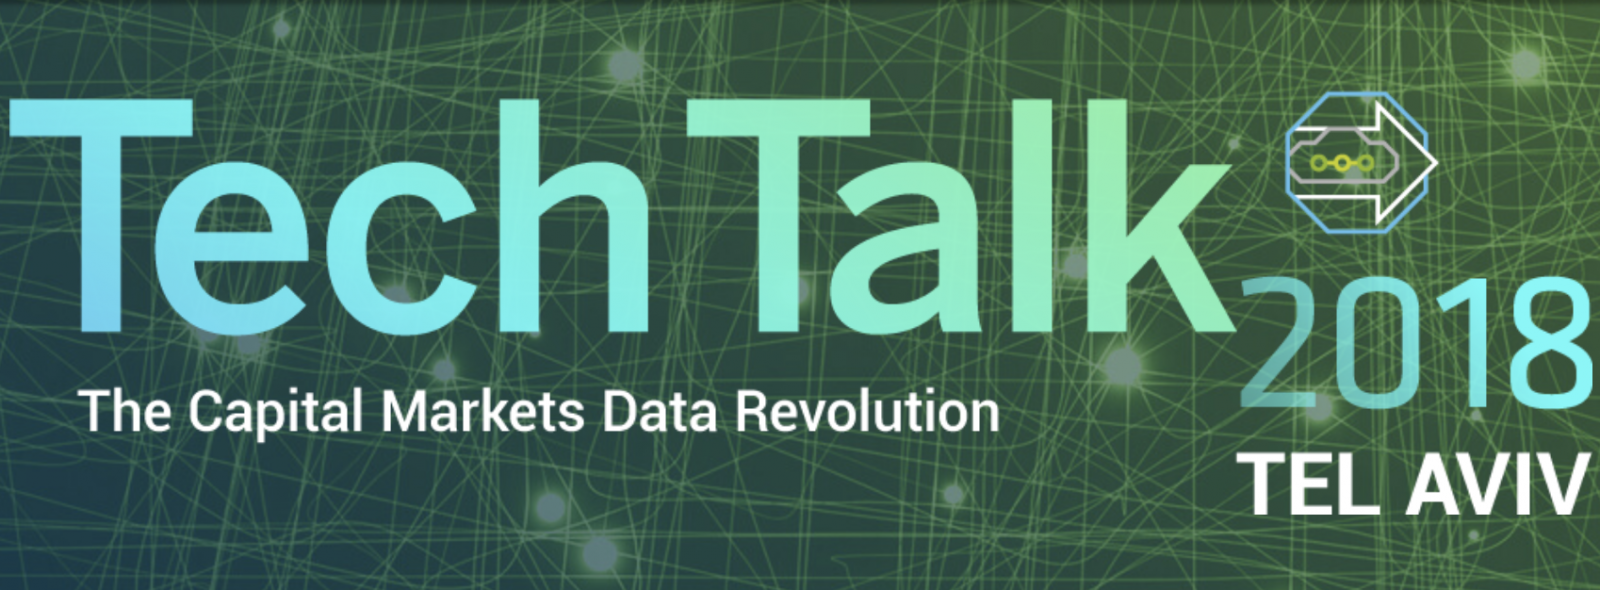 tech talk tel aviv 2018 logo